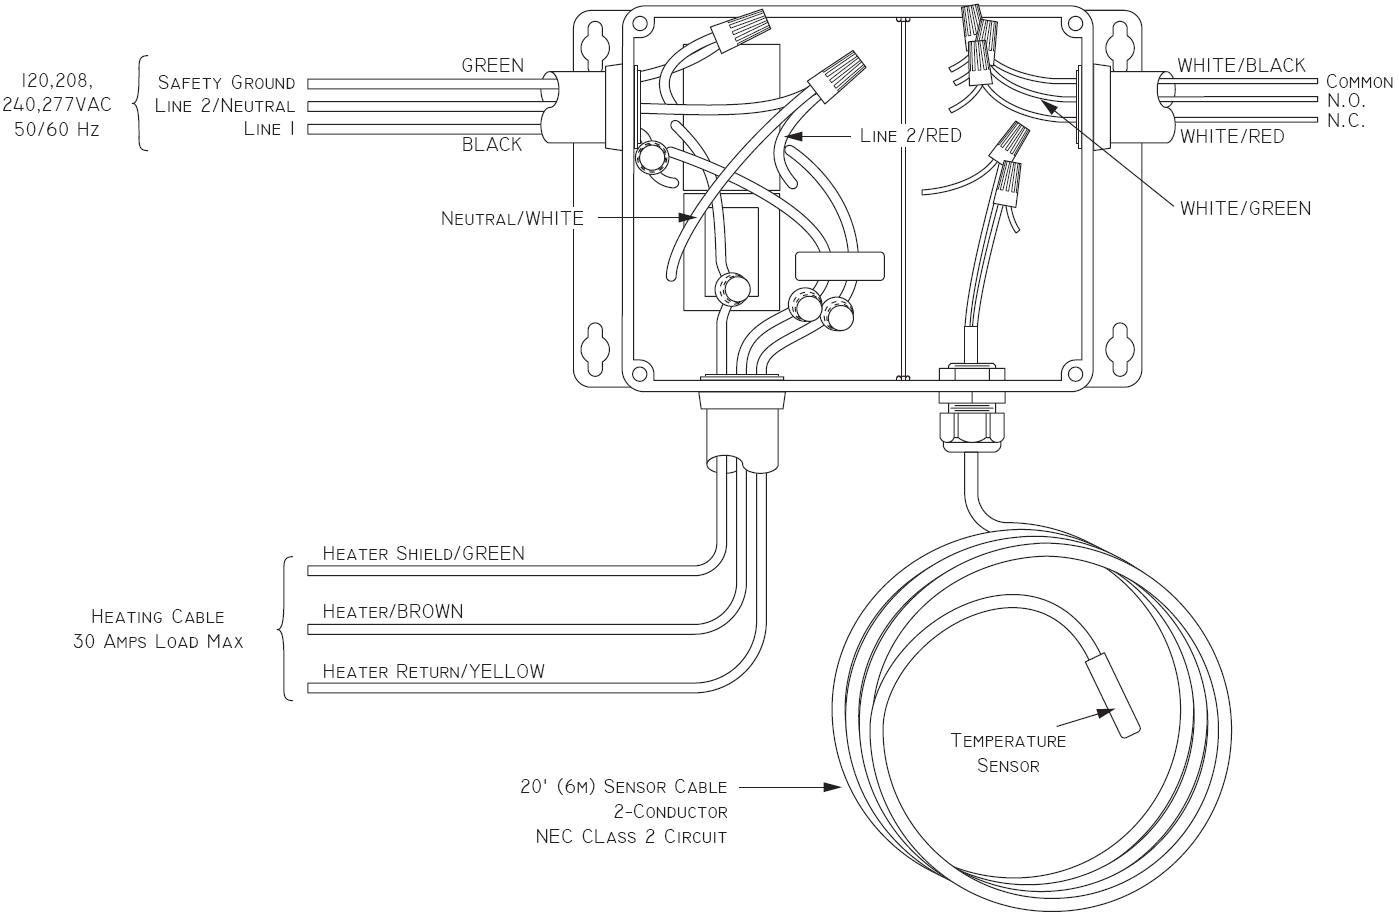 Frenheit Electric Baseboard Wiring Diagram Frenheit